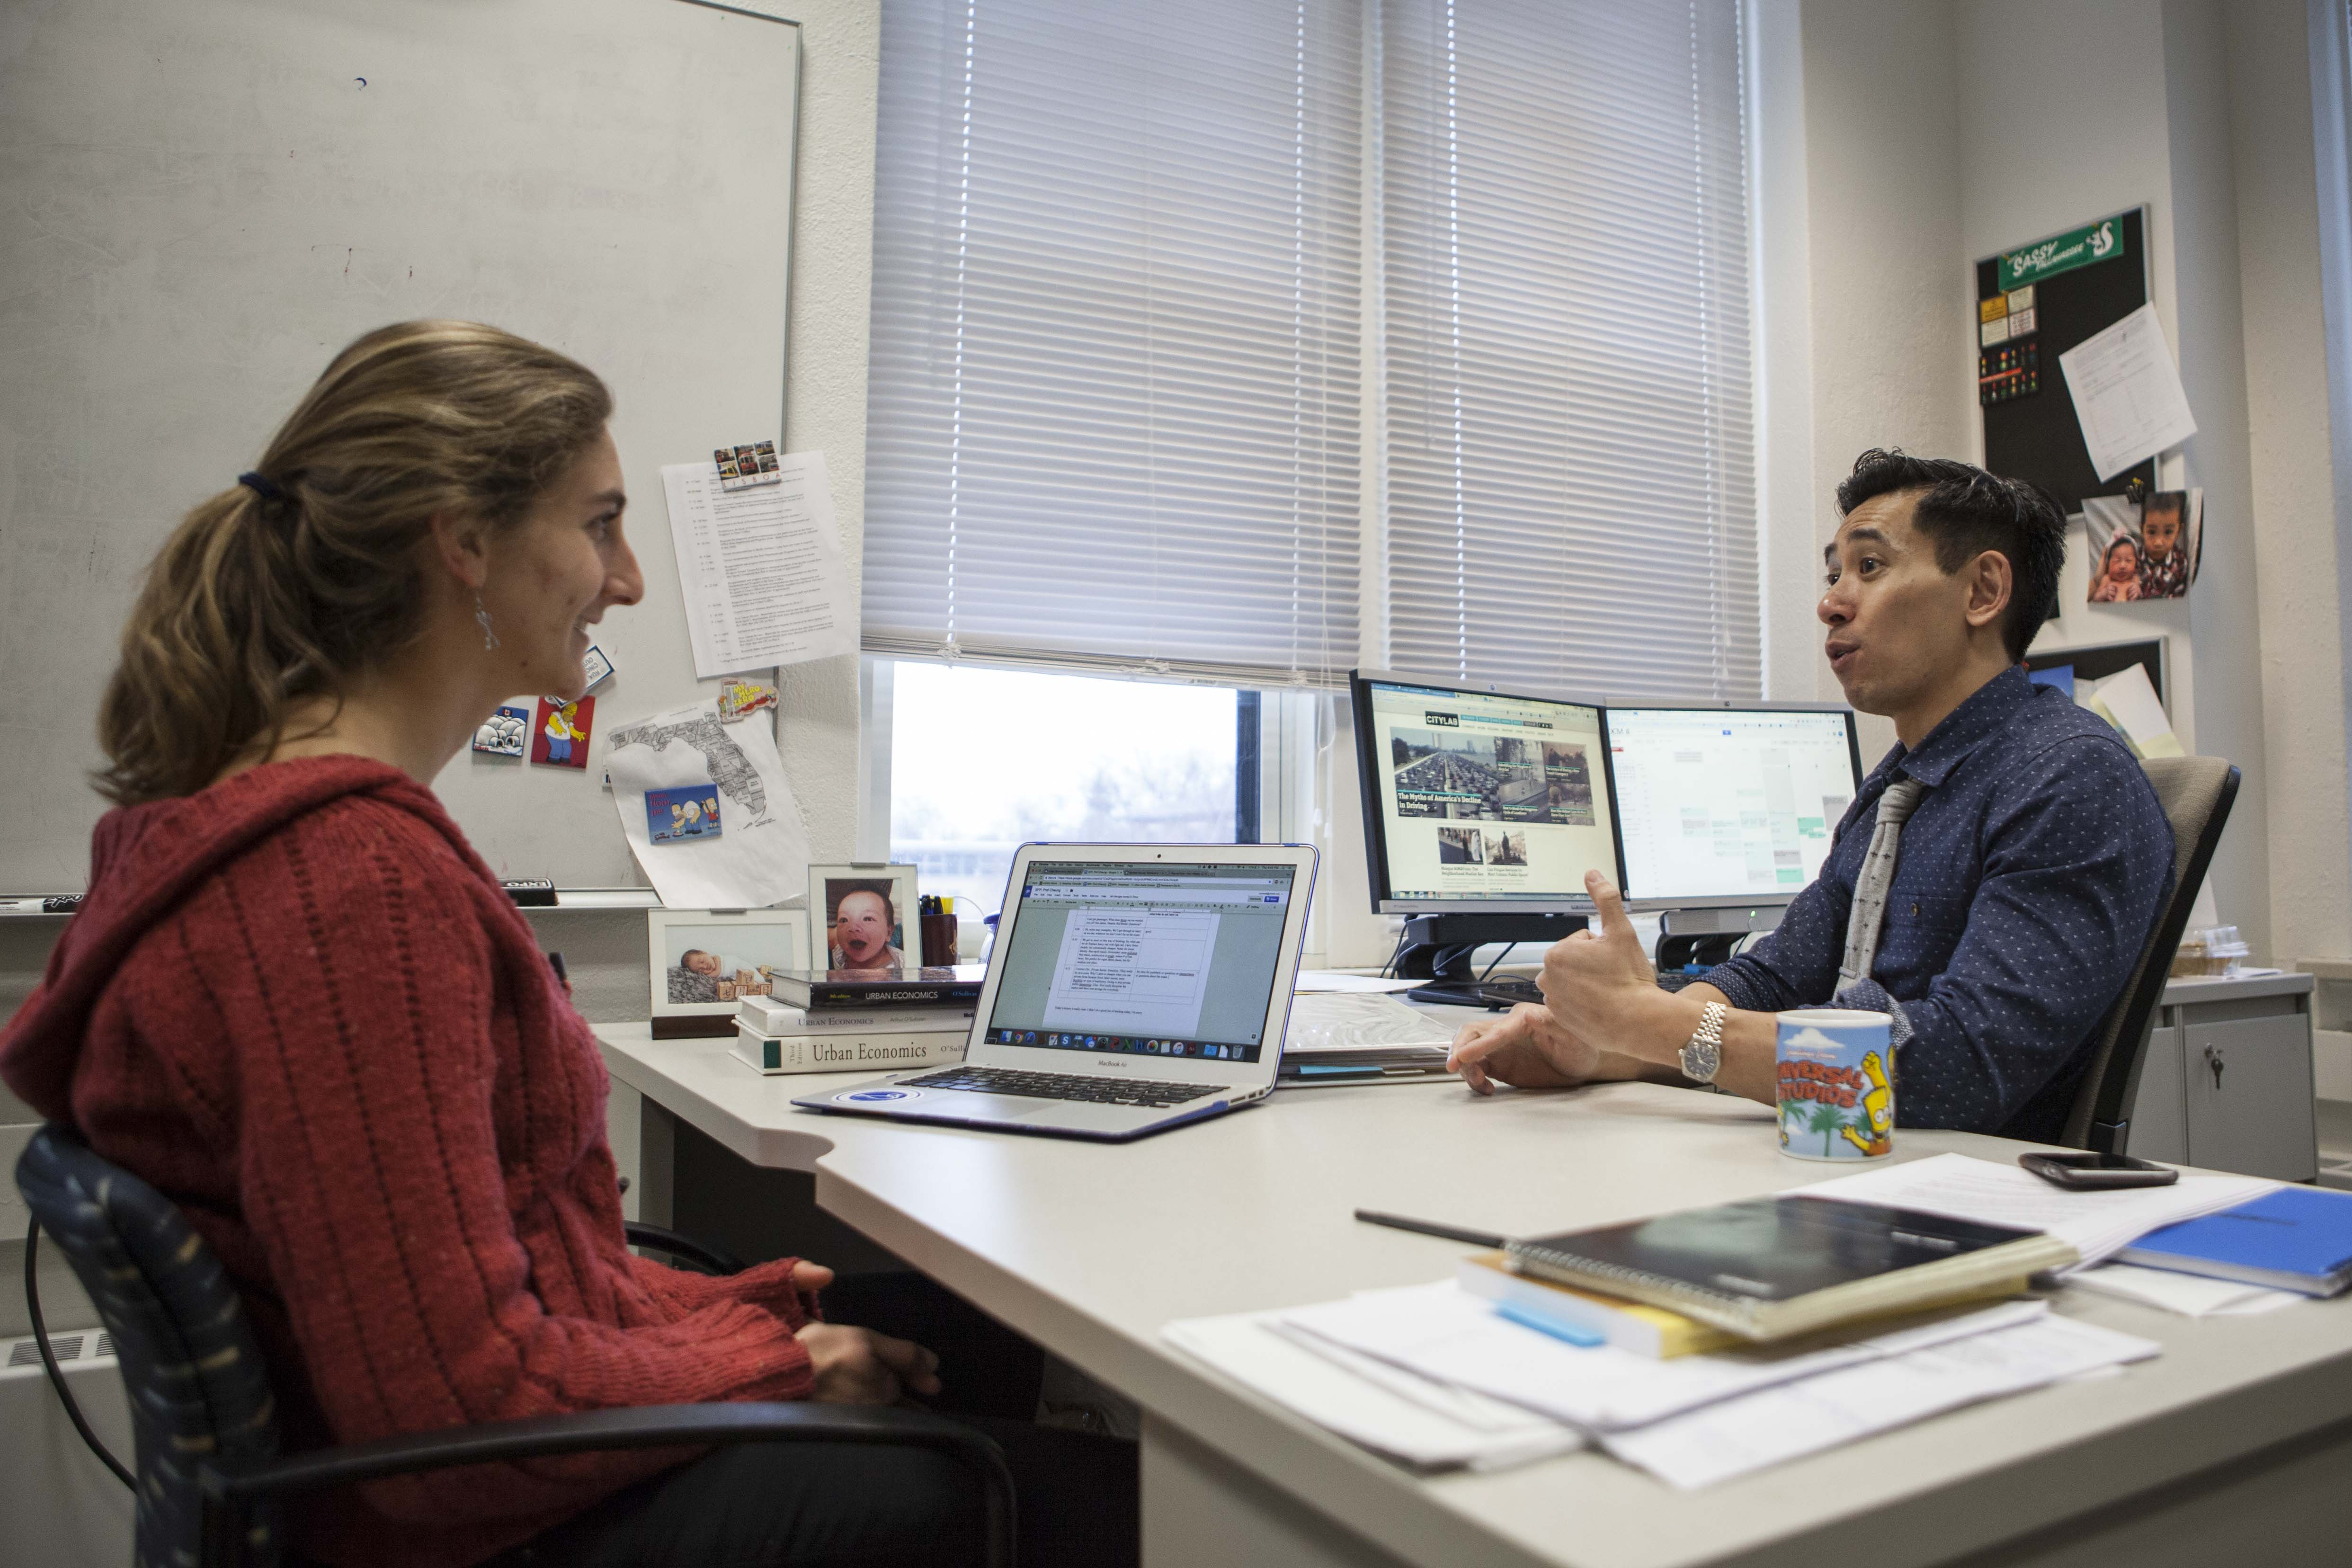 College junior Naomi Roswell and Associate Professor of Economics Ron Cheung meet in Cheung's office in Rice Hall. They are partners in the Student-Faculty Partnership Program, which engages faculty and students in a collaborative effort to improve teaching quality.